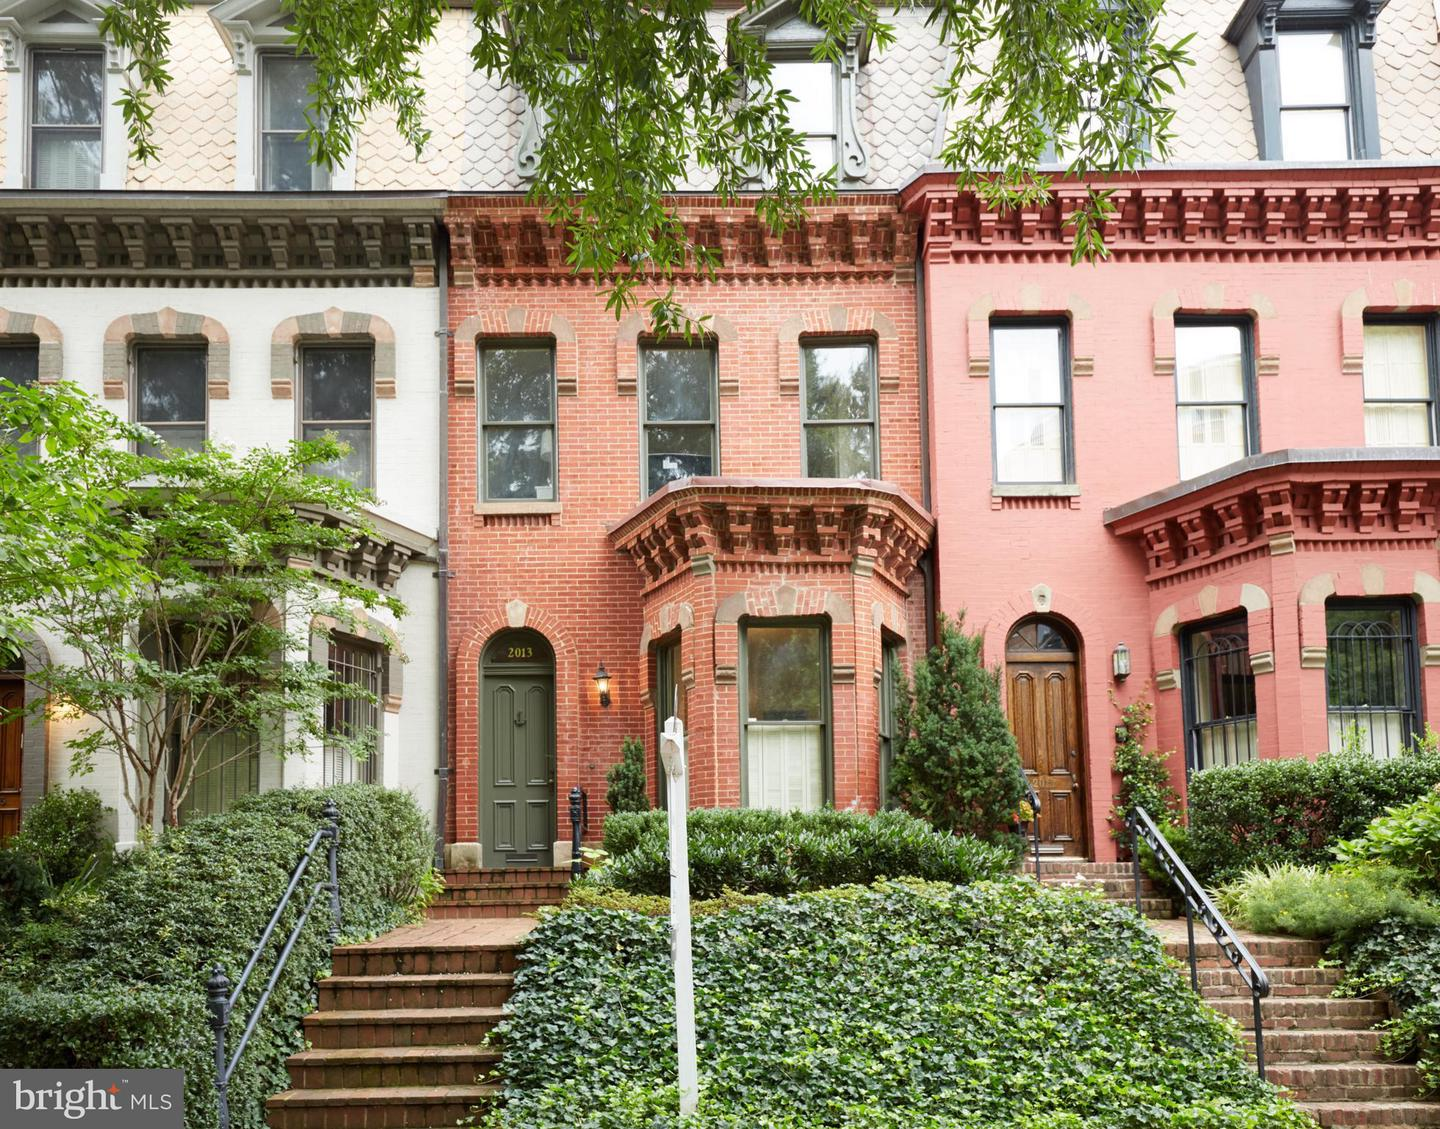 Single Family Home for Sale at 2013 N St NW 2013 N St NW Washington, District Of Columbia 20036 United States